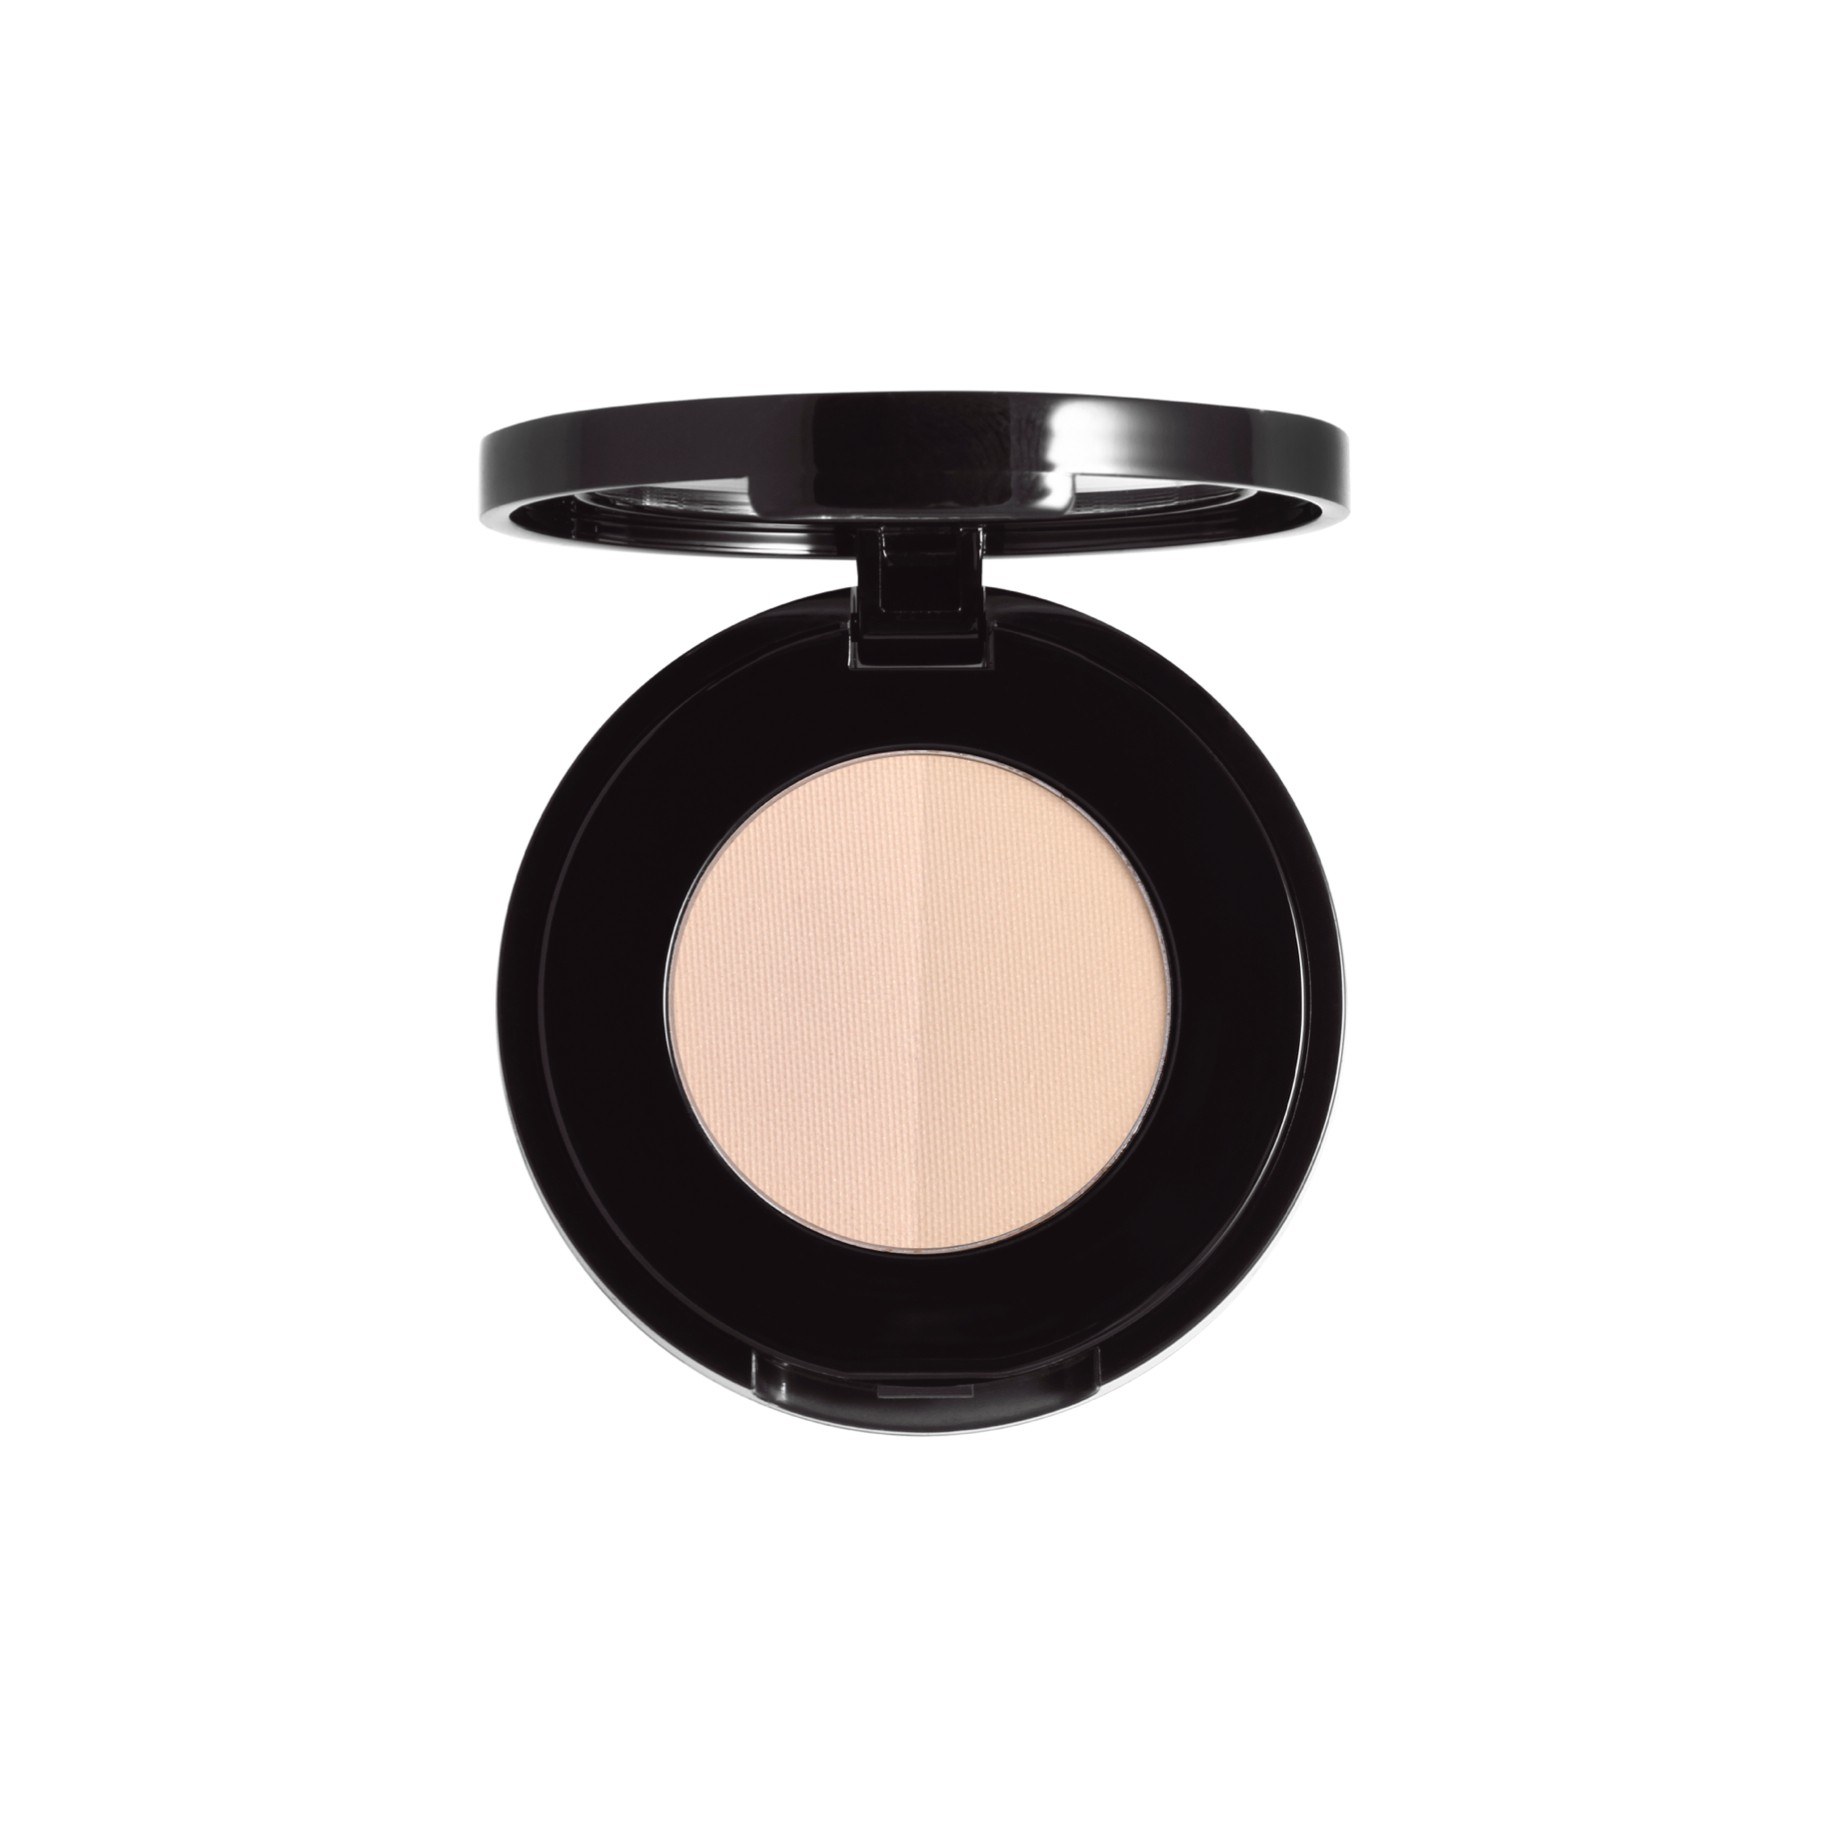 ANASTASIA BEVERLY HILLS Тени двойные для бровей Golden Blonde/Blonde / Brow Powder Duo 1,60гр